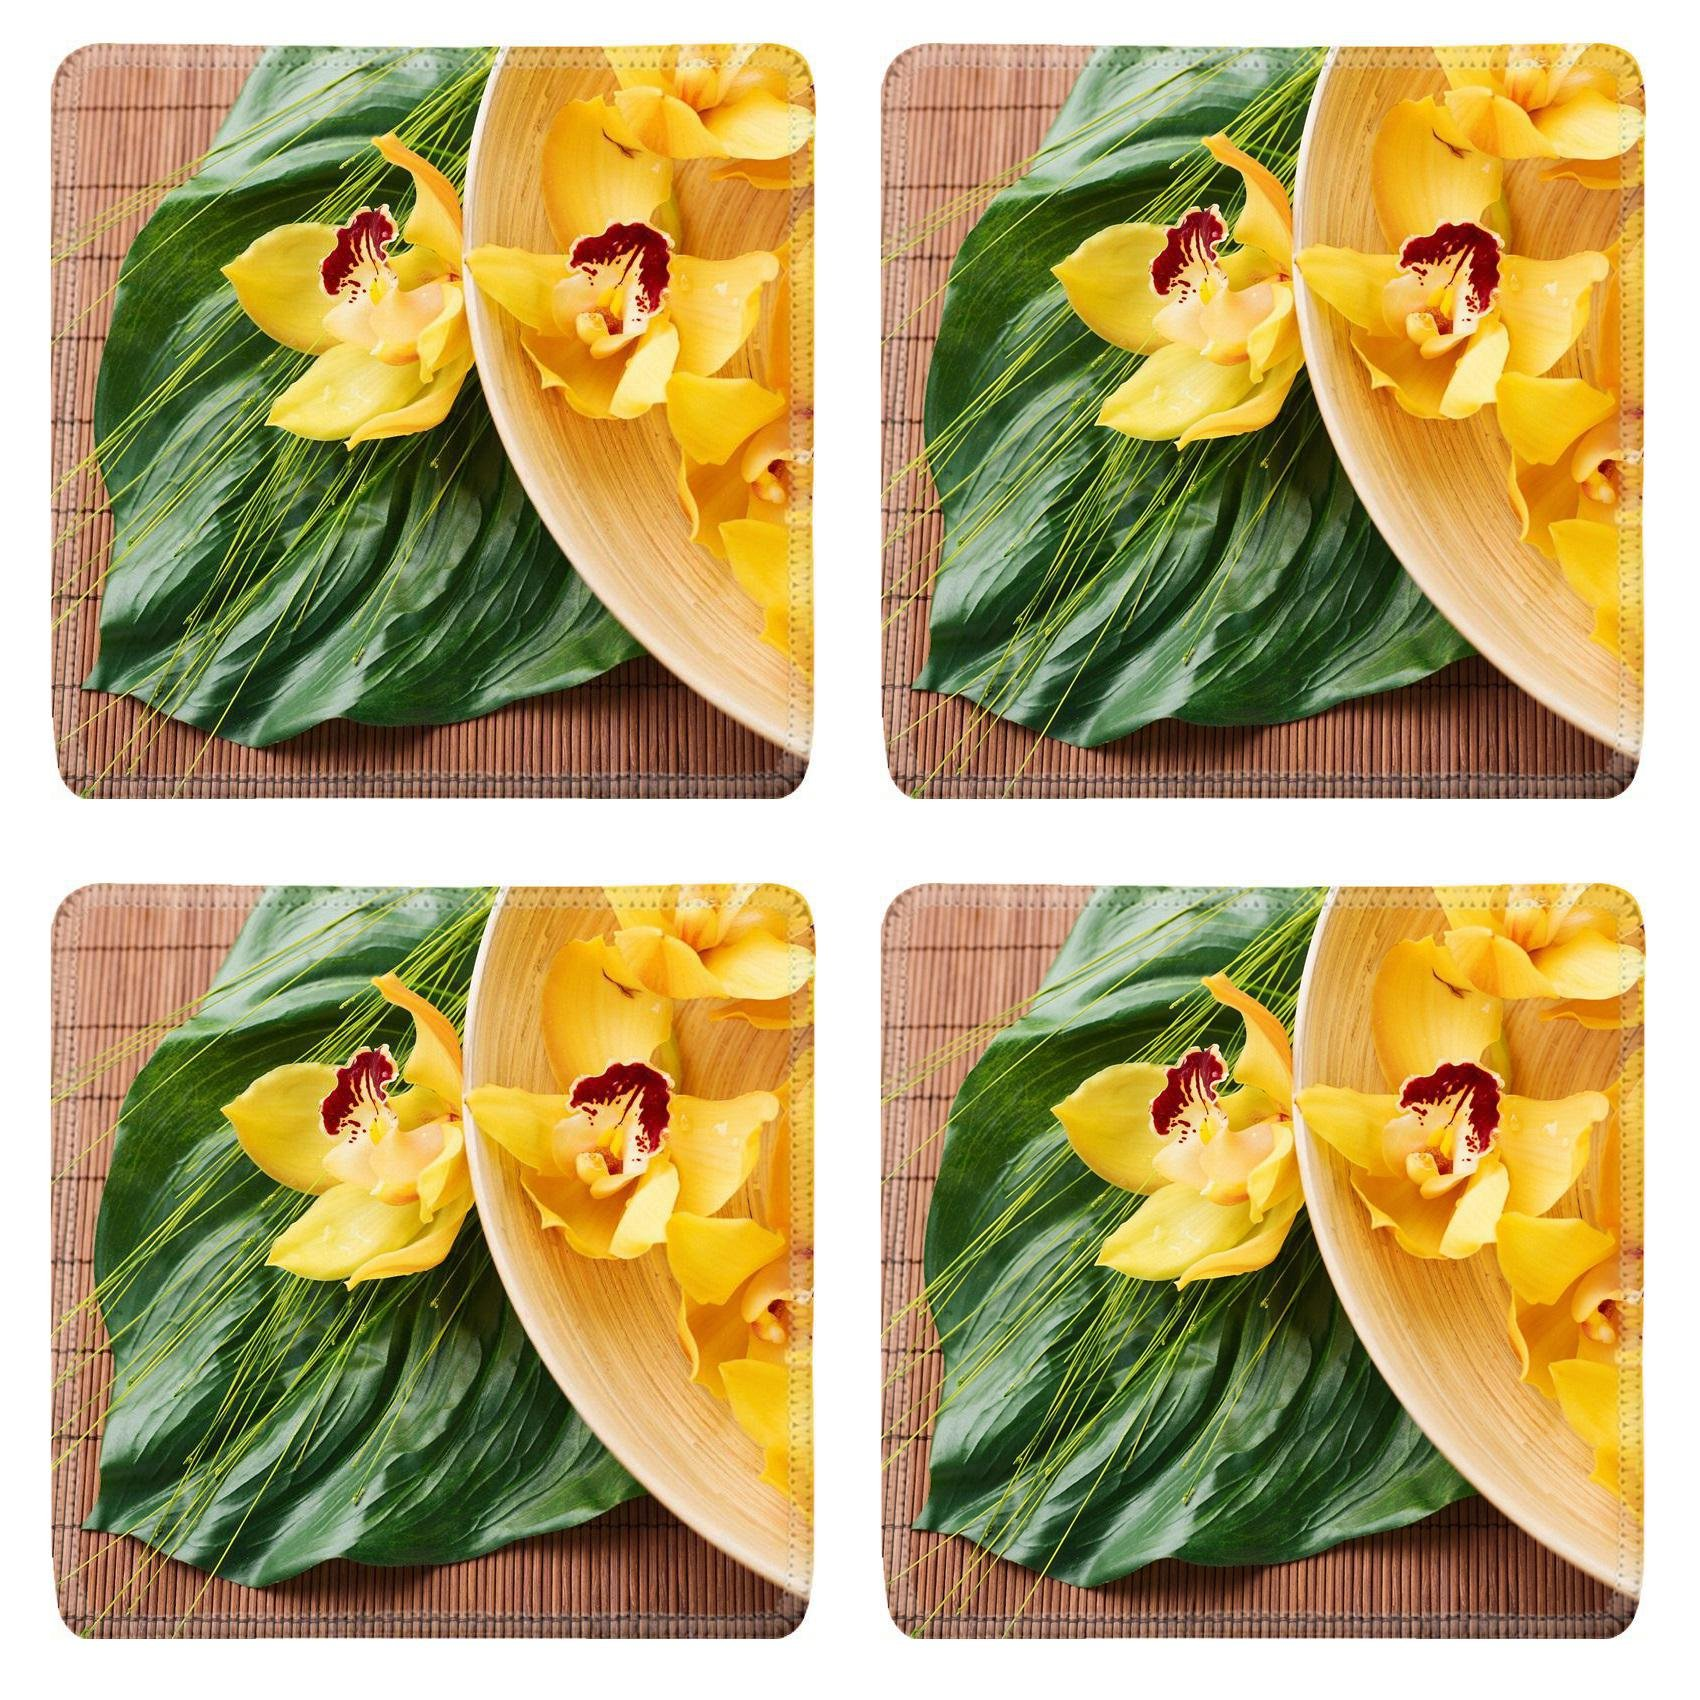 MSD Square Coasters Non-Slip Natural Rubber Desk Coasters design 25698161 spa heath and beauty concept orchid flowers in bowl with green leaf on mat